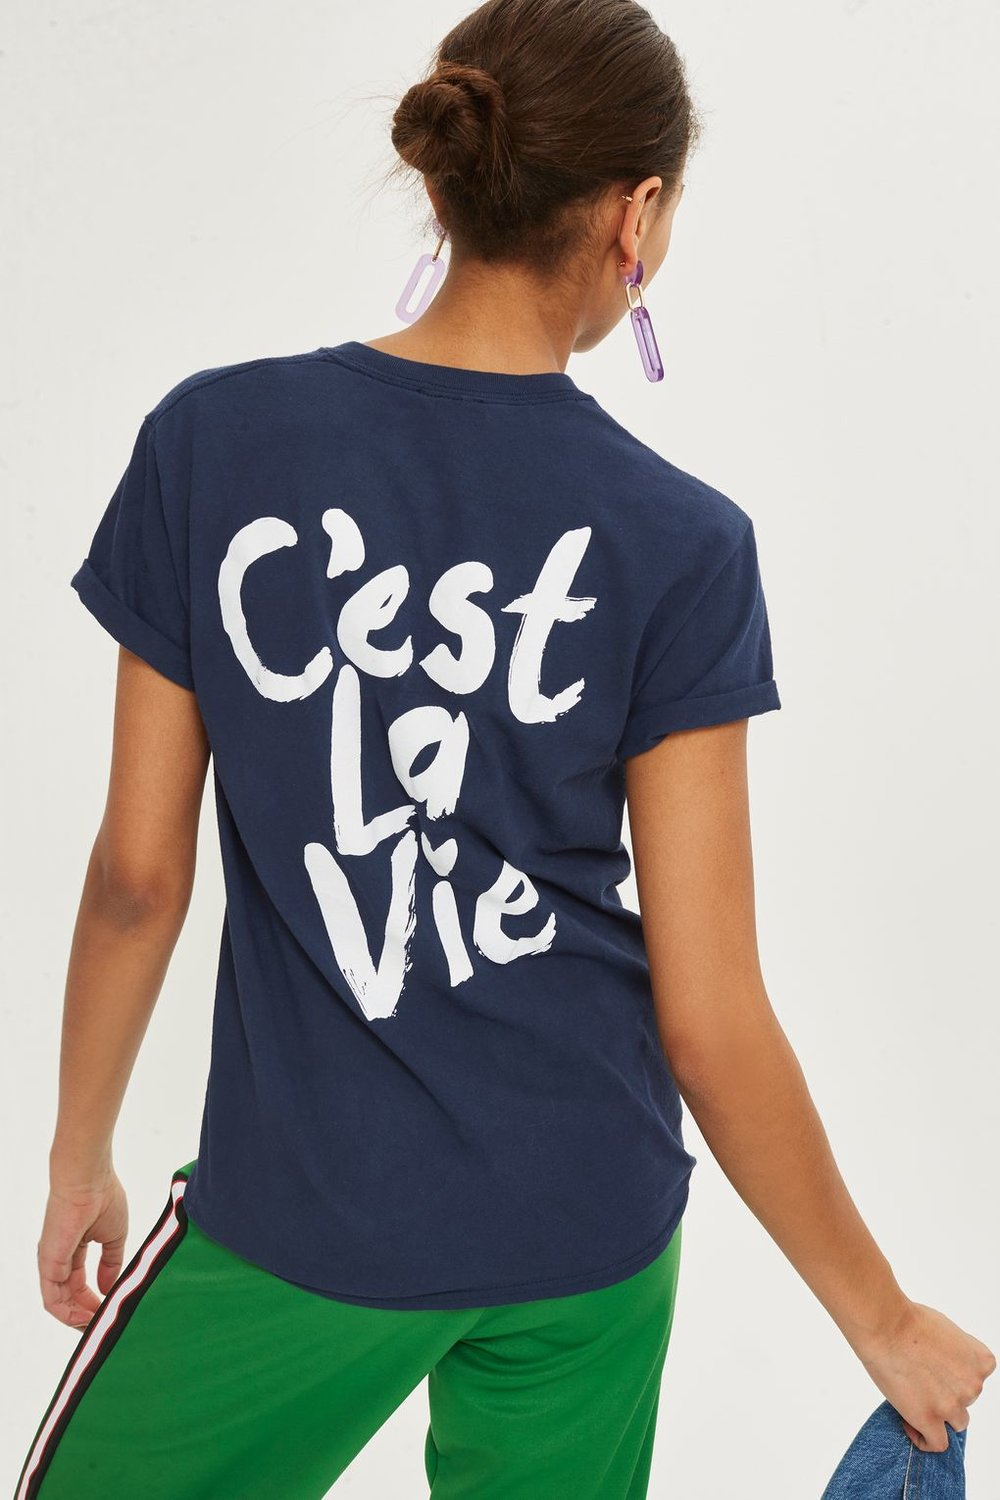 Slogan T-Shirt, Top Shop, £16